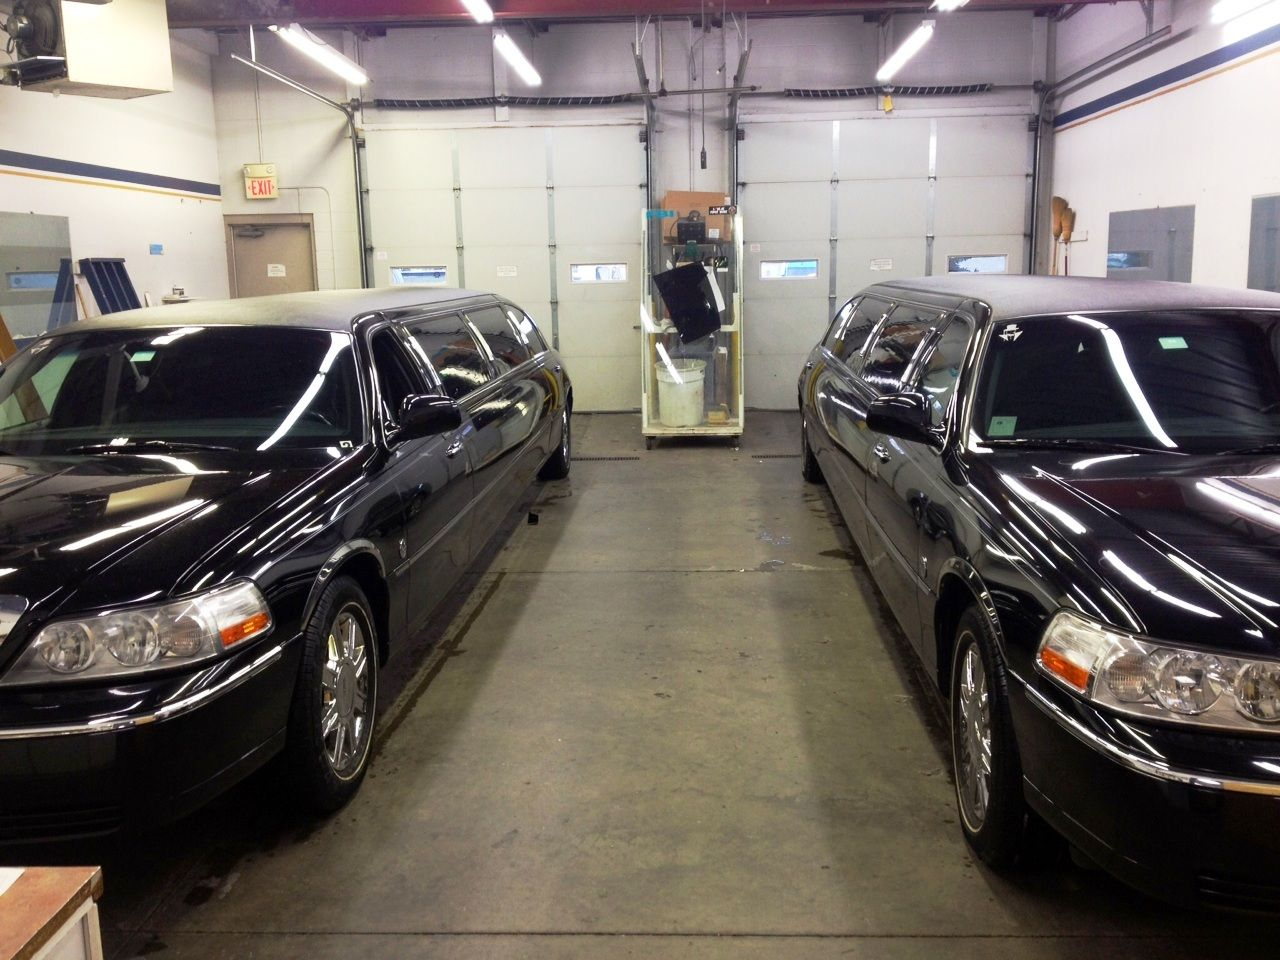 Two limos that were custom fitted with window tint